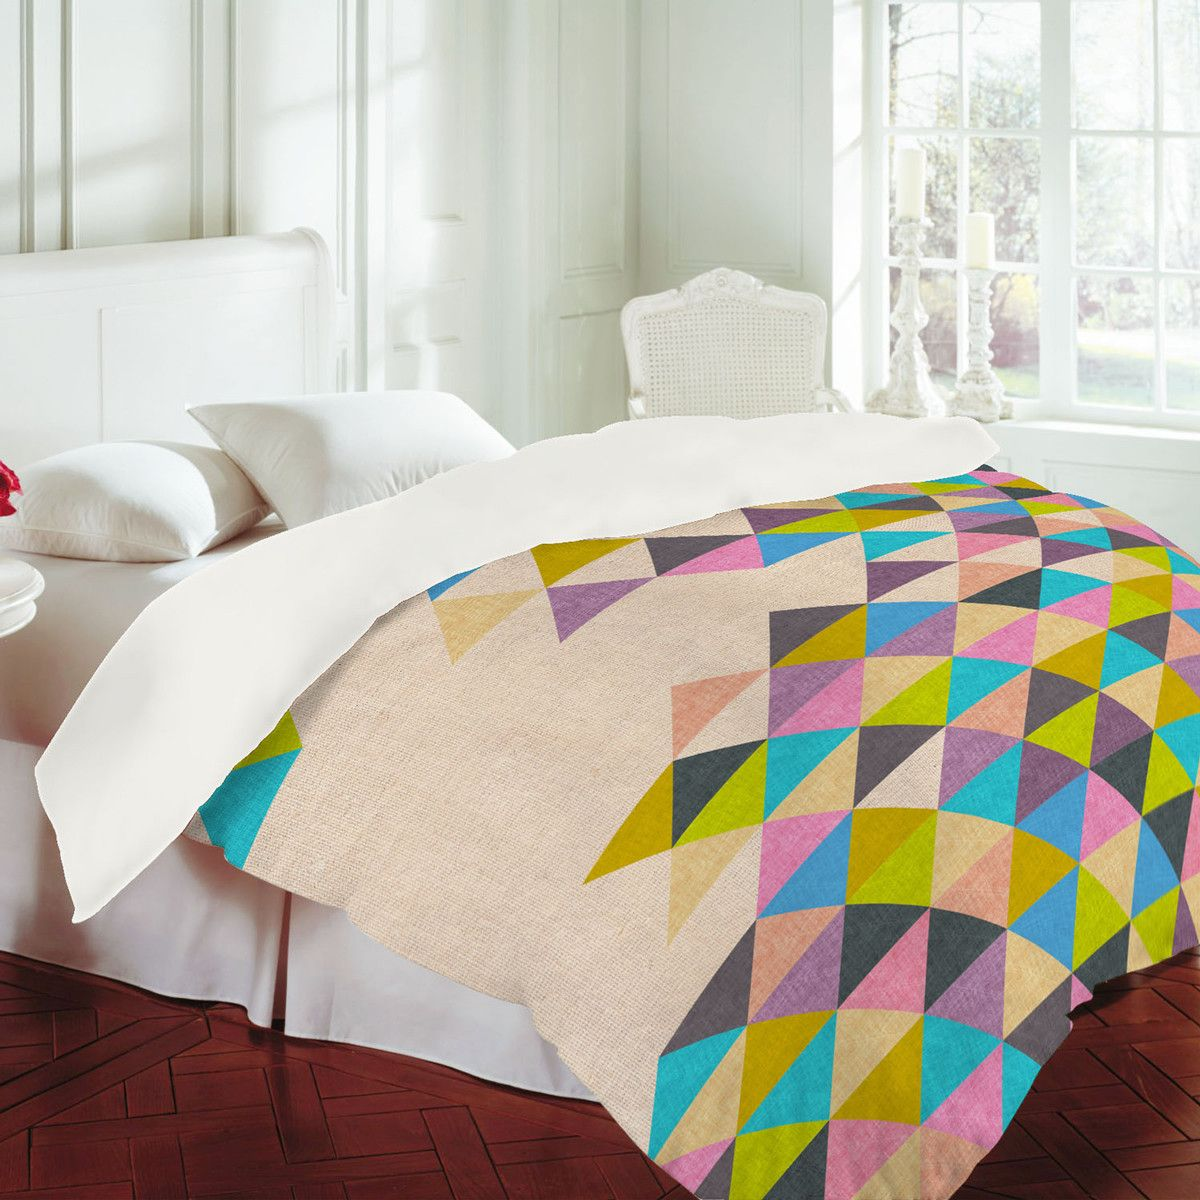 Incomplete Duvet Cover Queen By Bianca Green Deny Designs